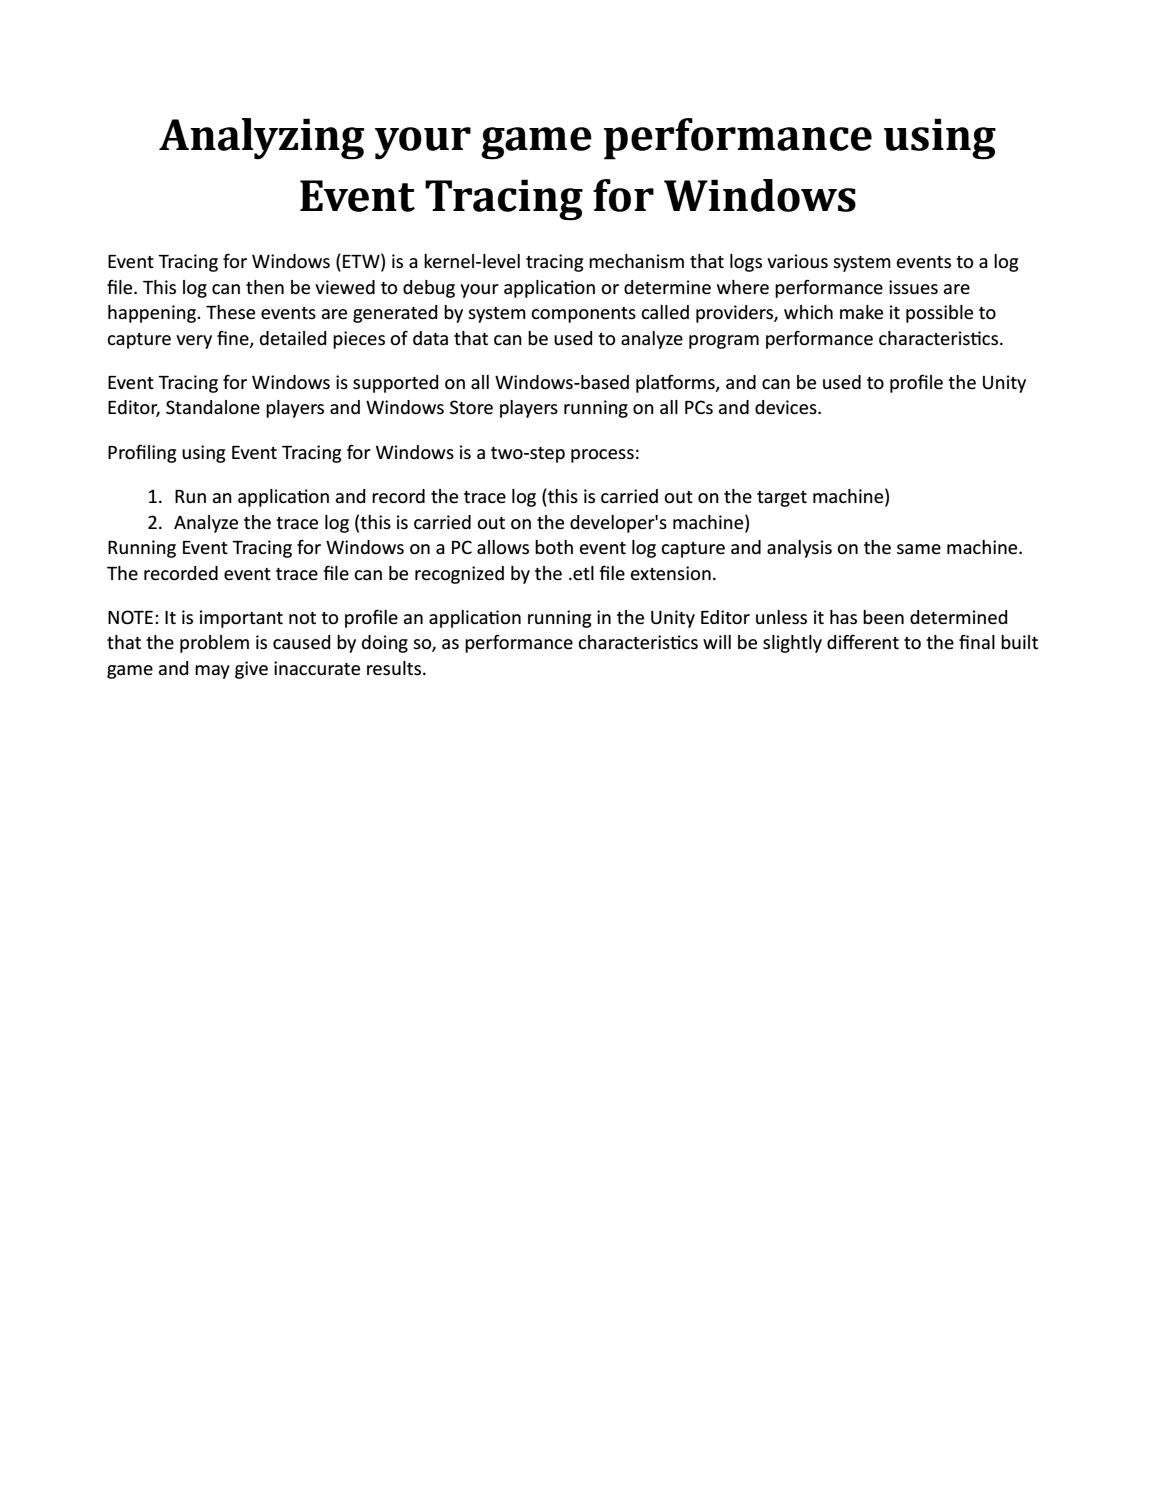 Analyzing your game performance using event tracing for windows